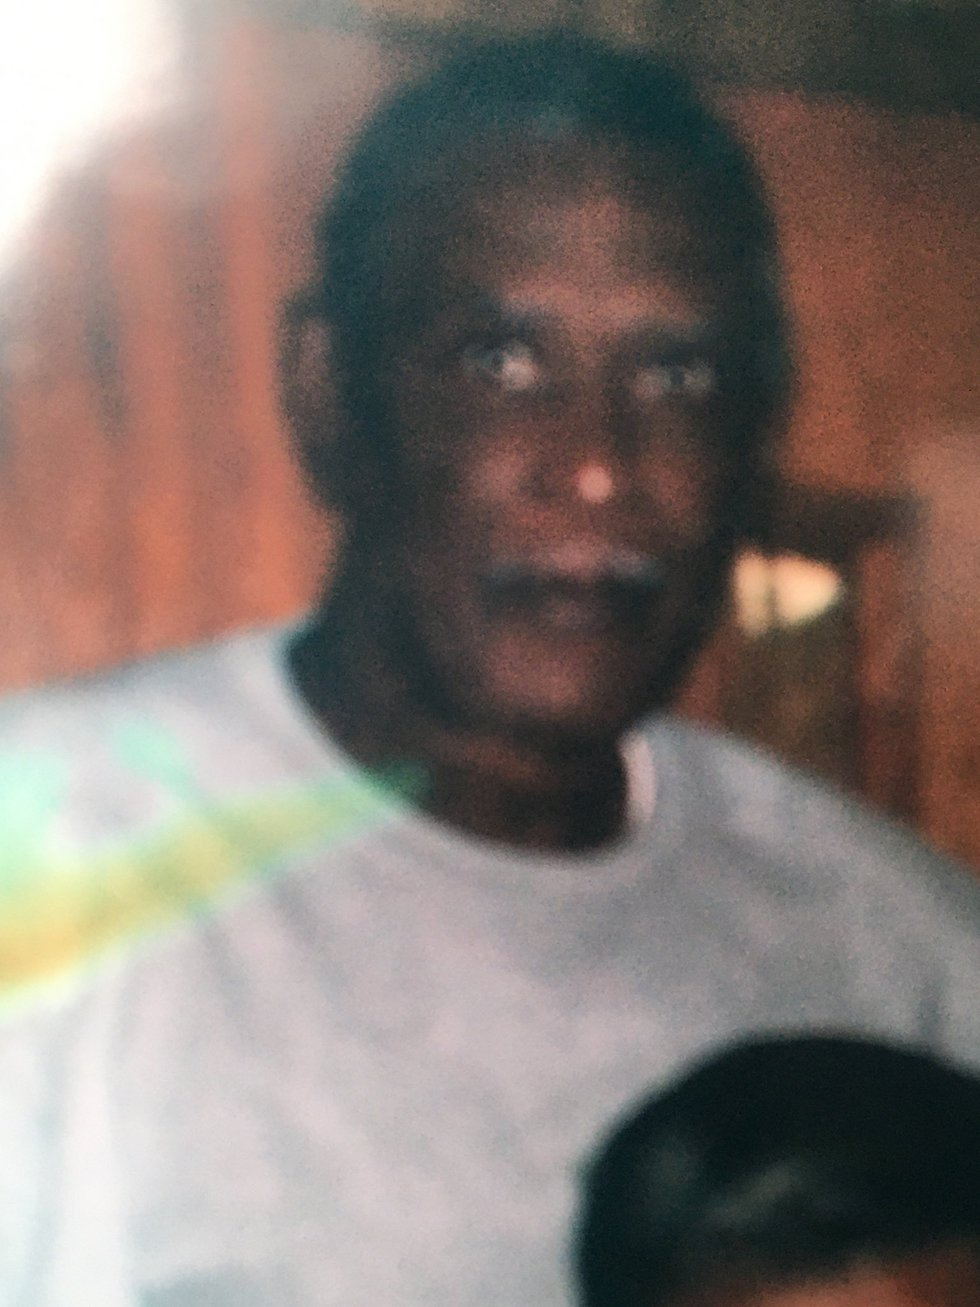 According to MBI, 77-year-old Robert Earl Bass is a 6′4″ black man, weighing 260lbs, with black...